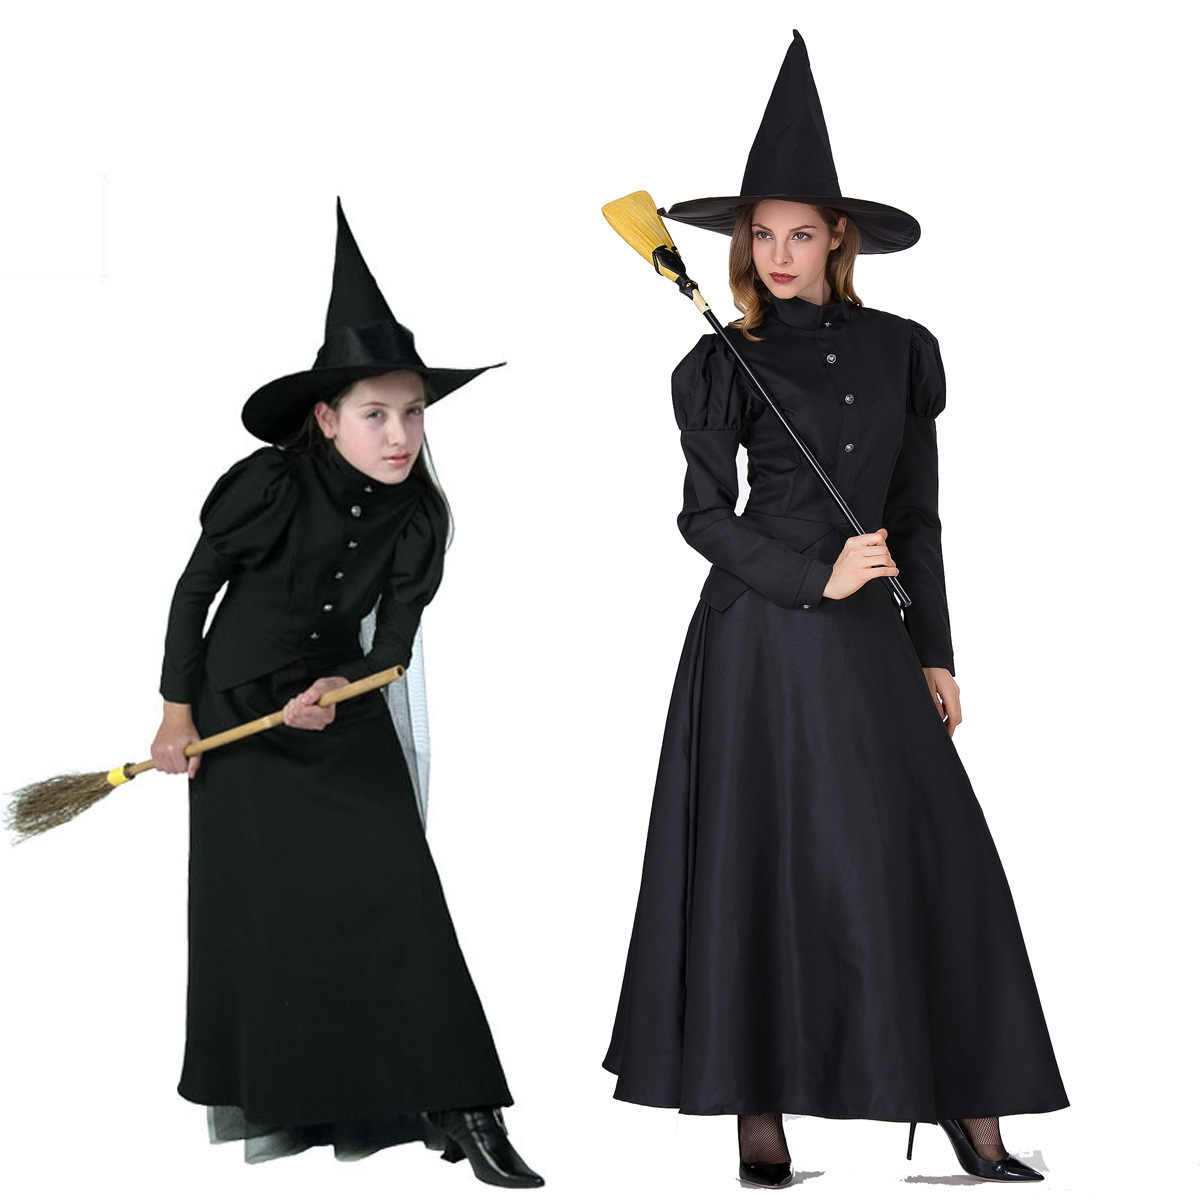 Halloween Length 2020 The 2020 Women Deluxe Wicked Witch Costume Black Full Length Dress